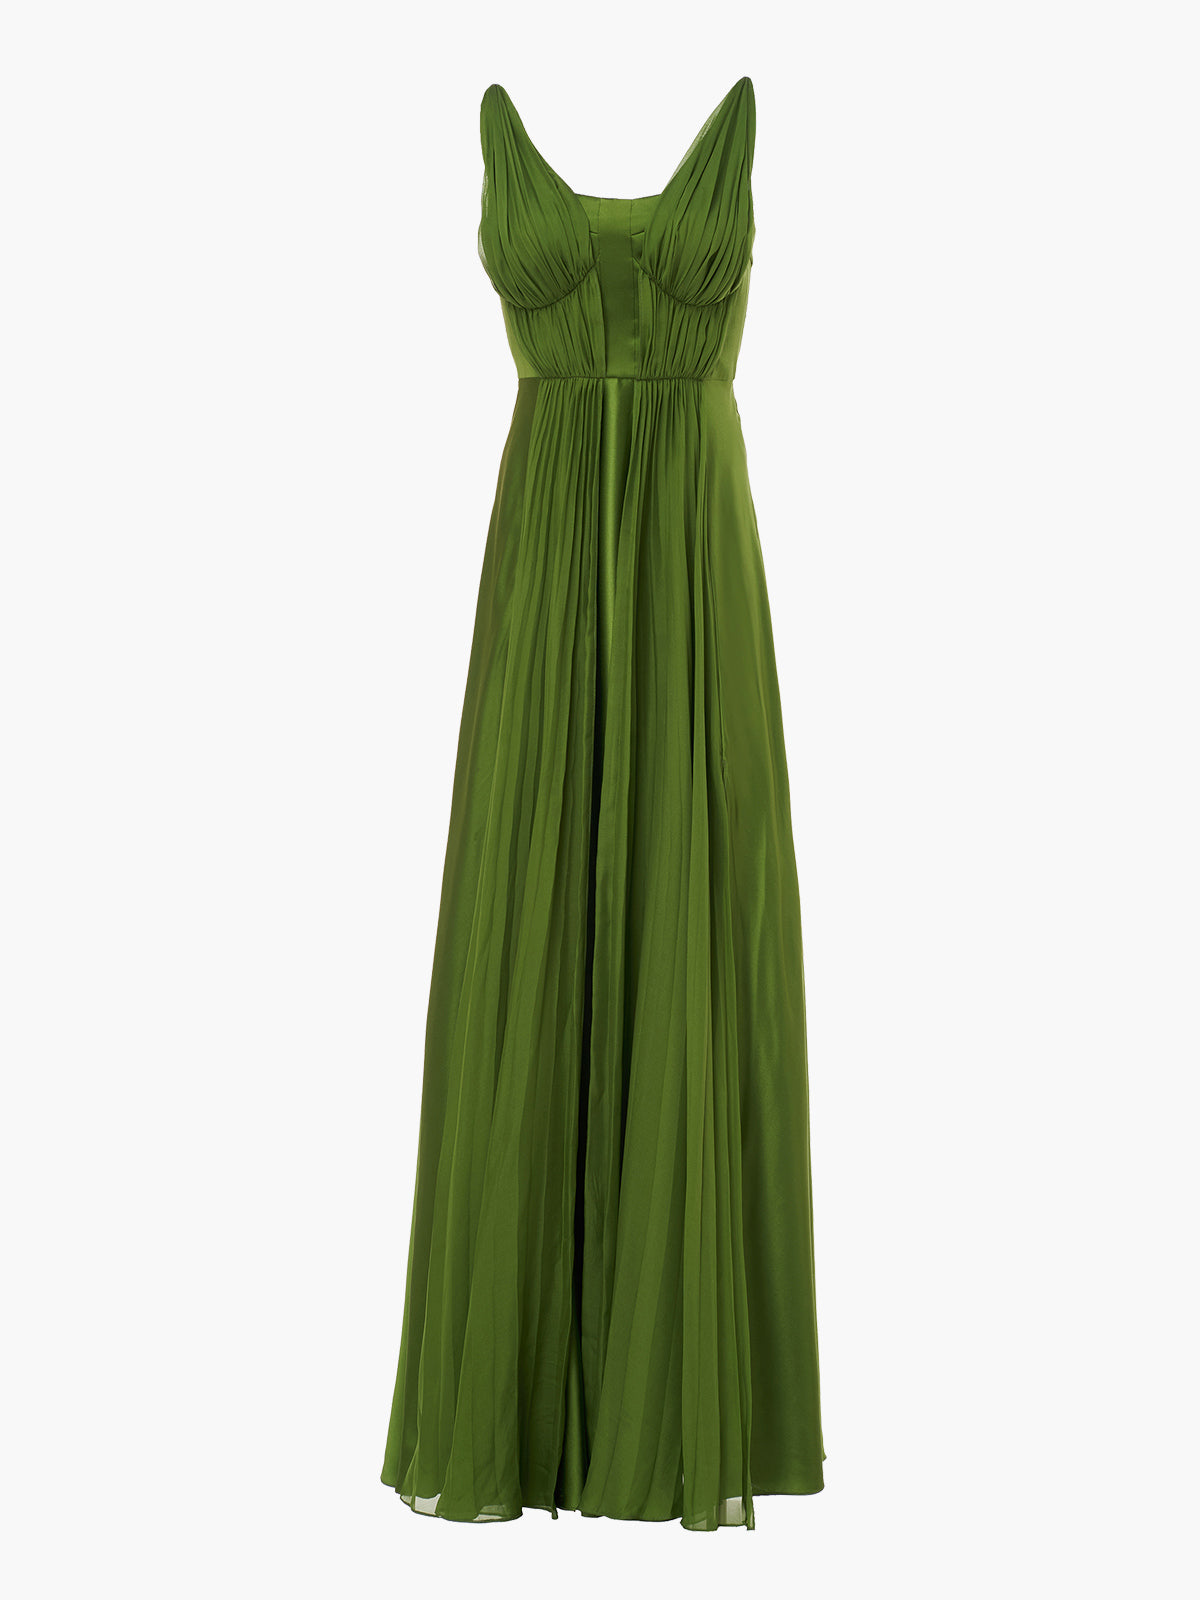 Adele Gown Adele Gown